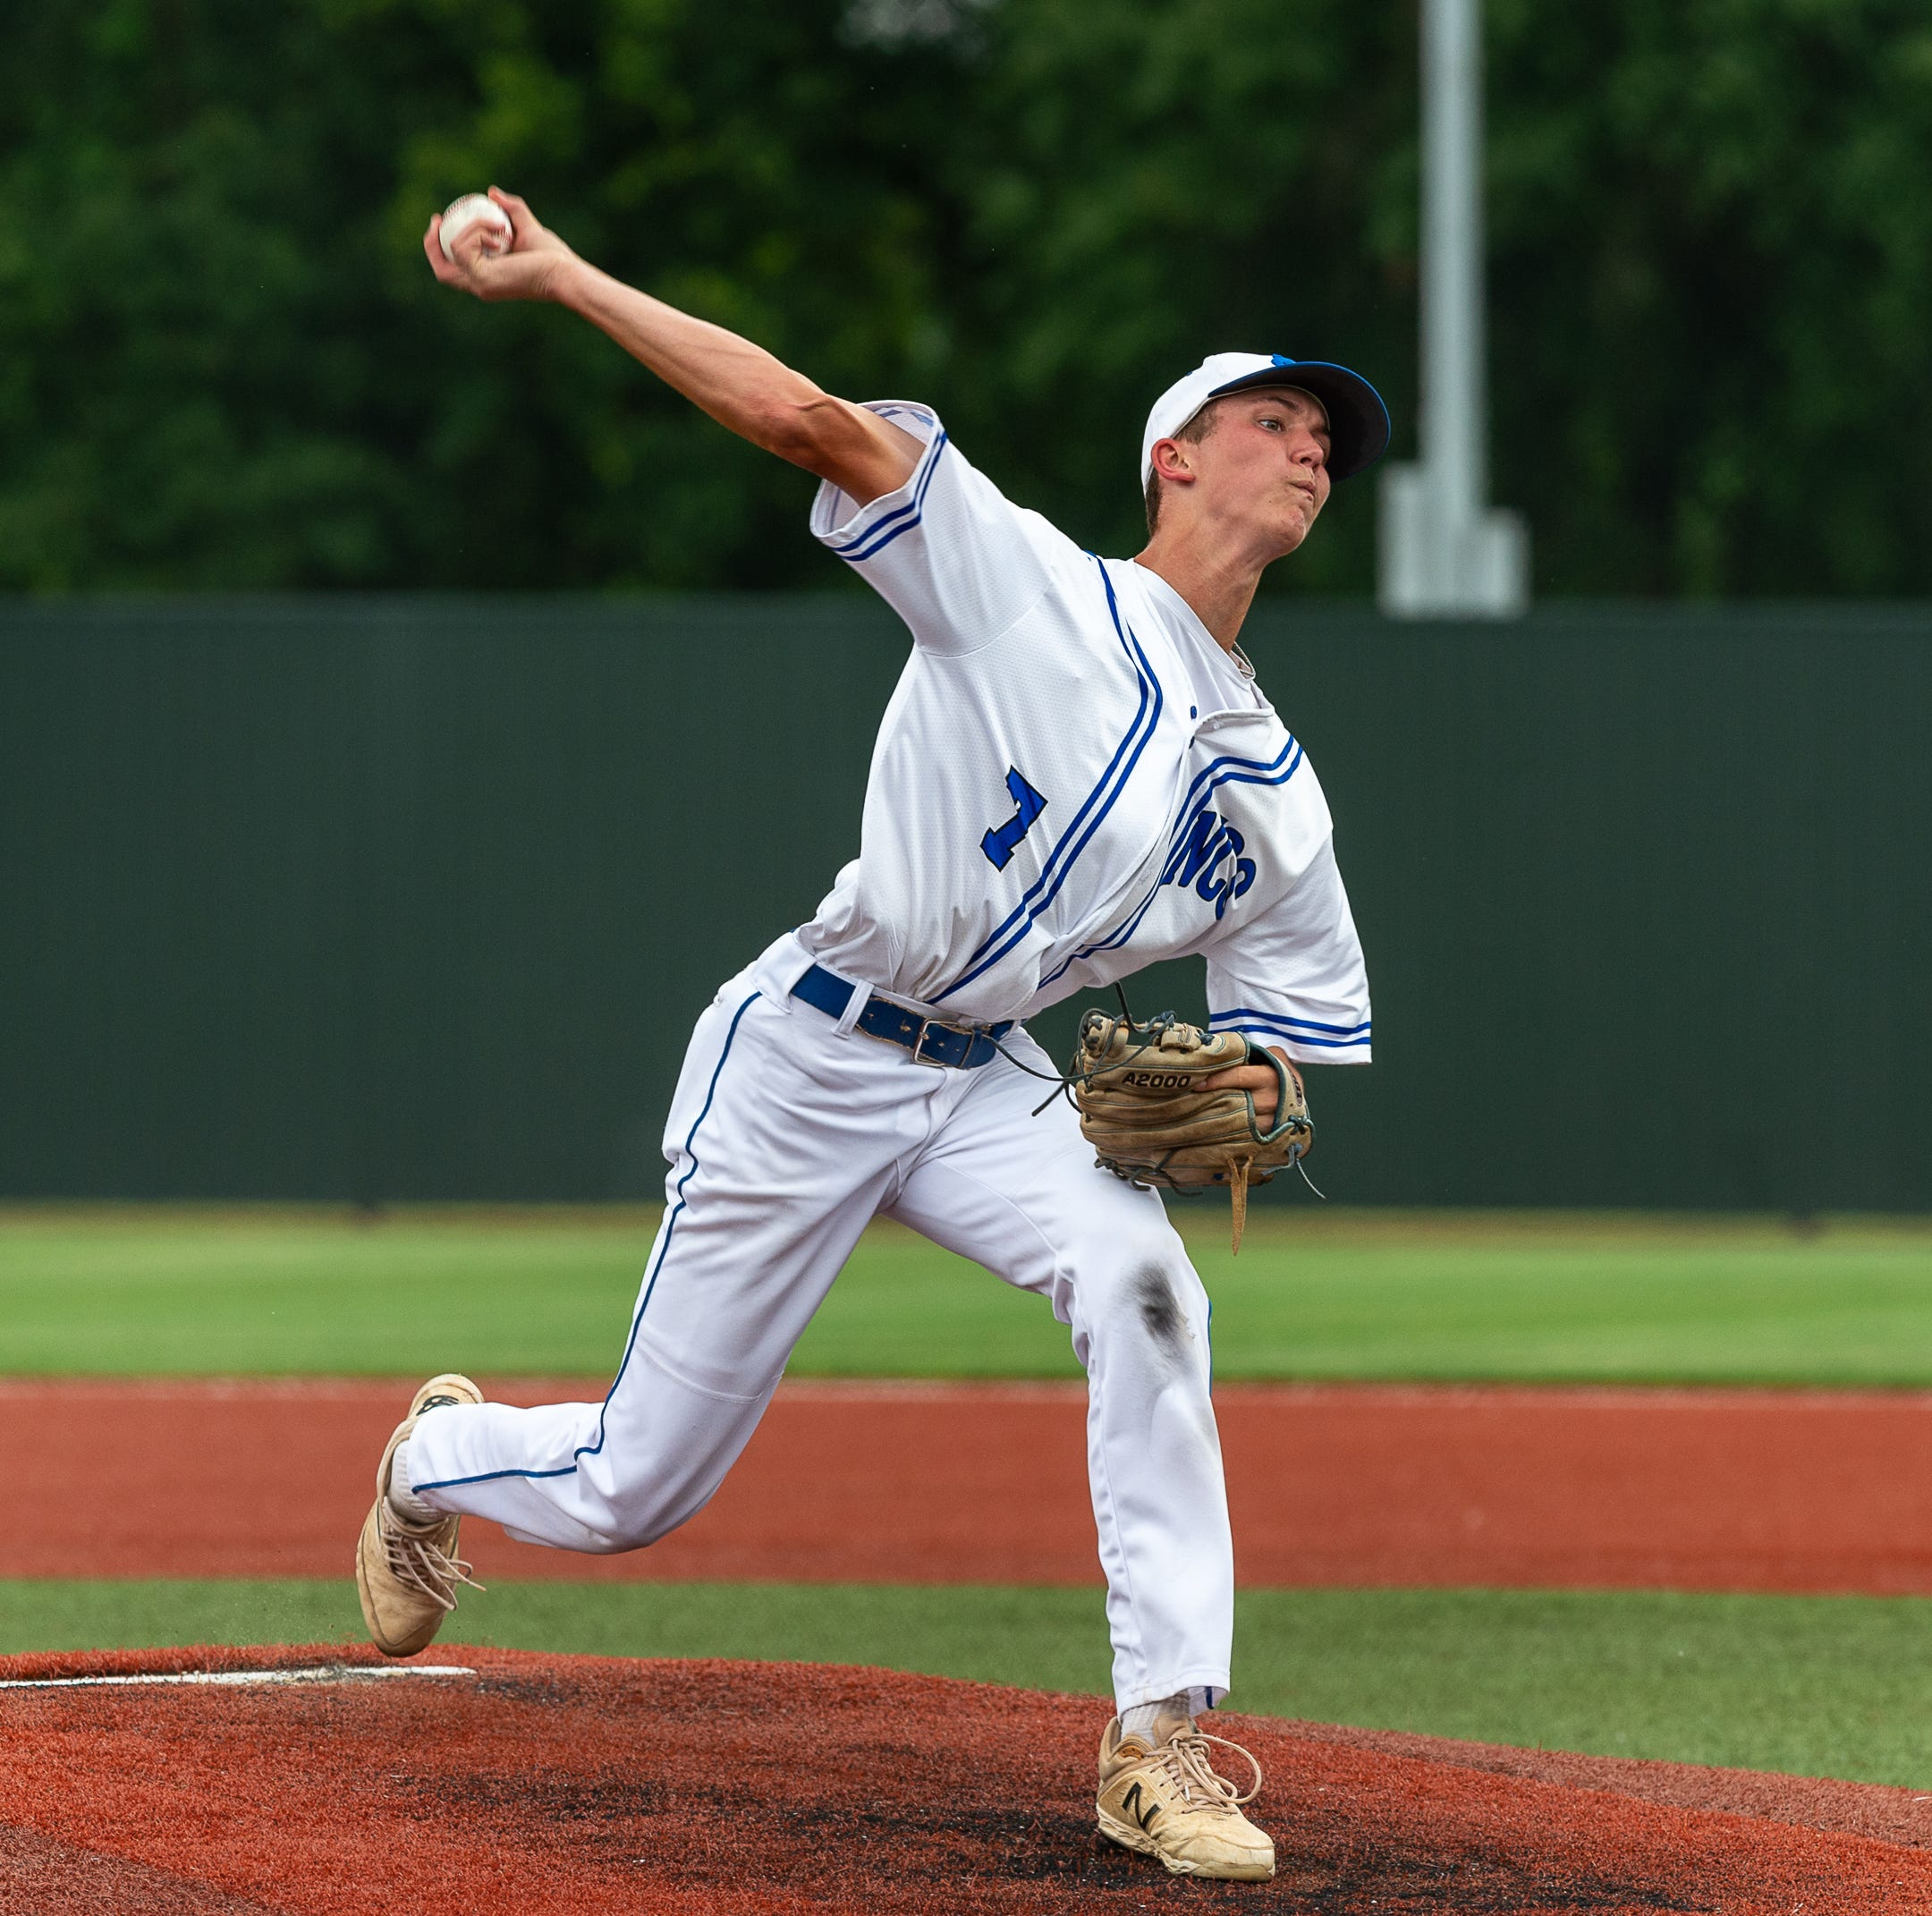 State tourney delay affects pitchers' availability; what does it mean for Acadiana teams?